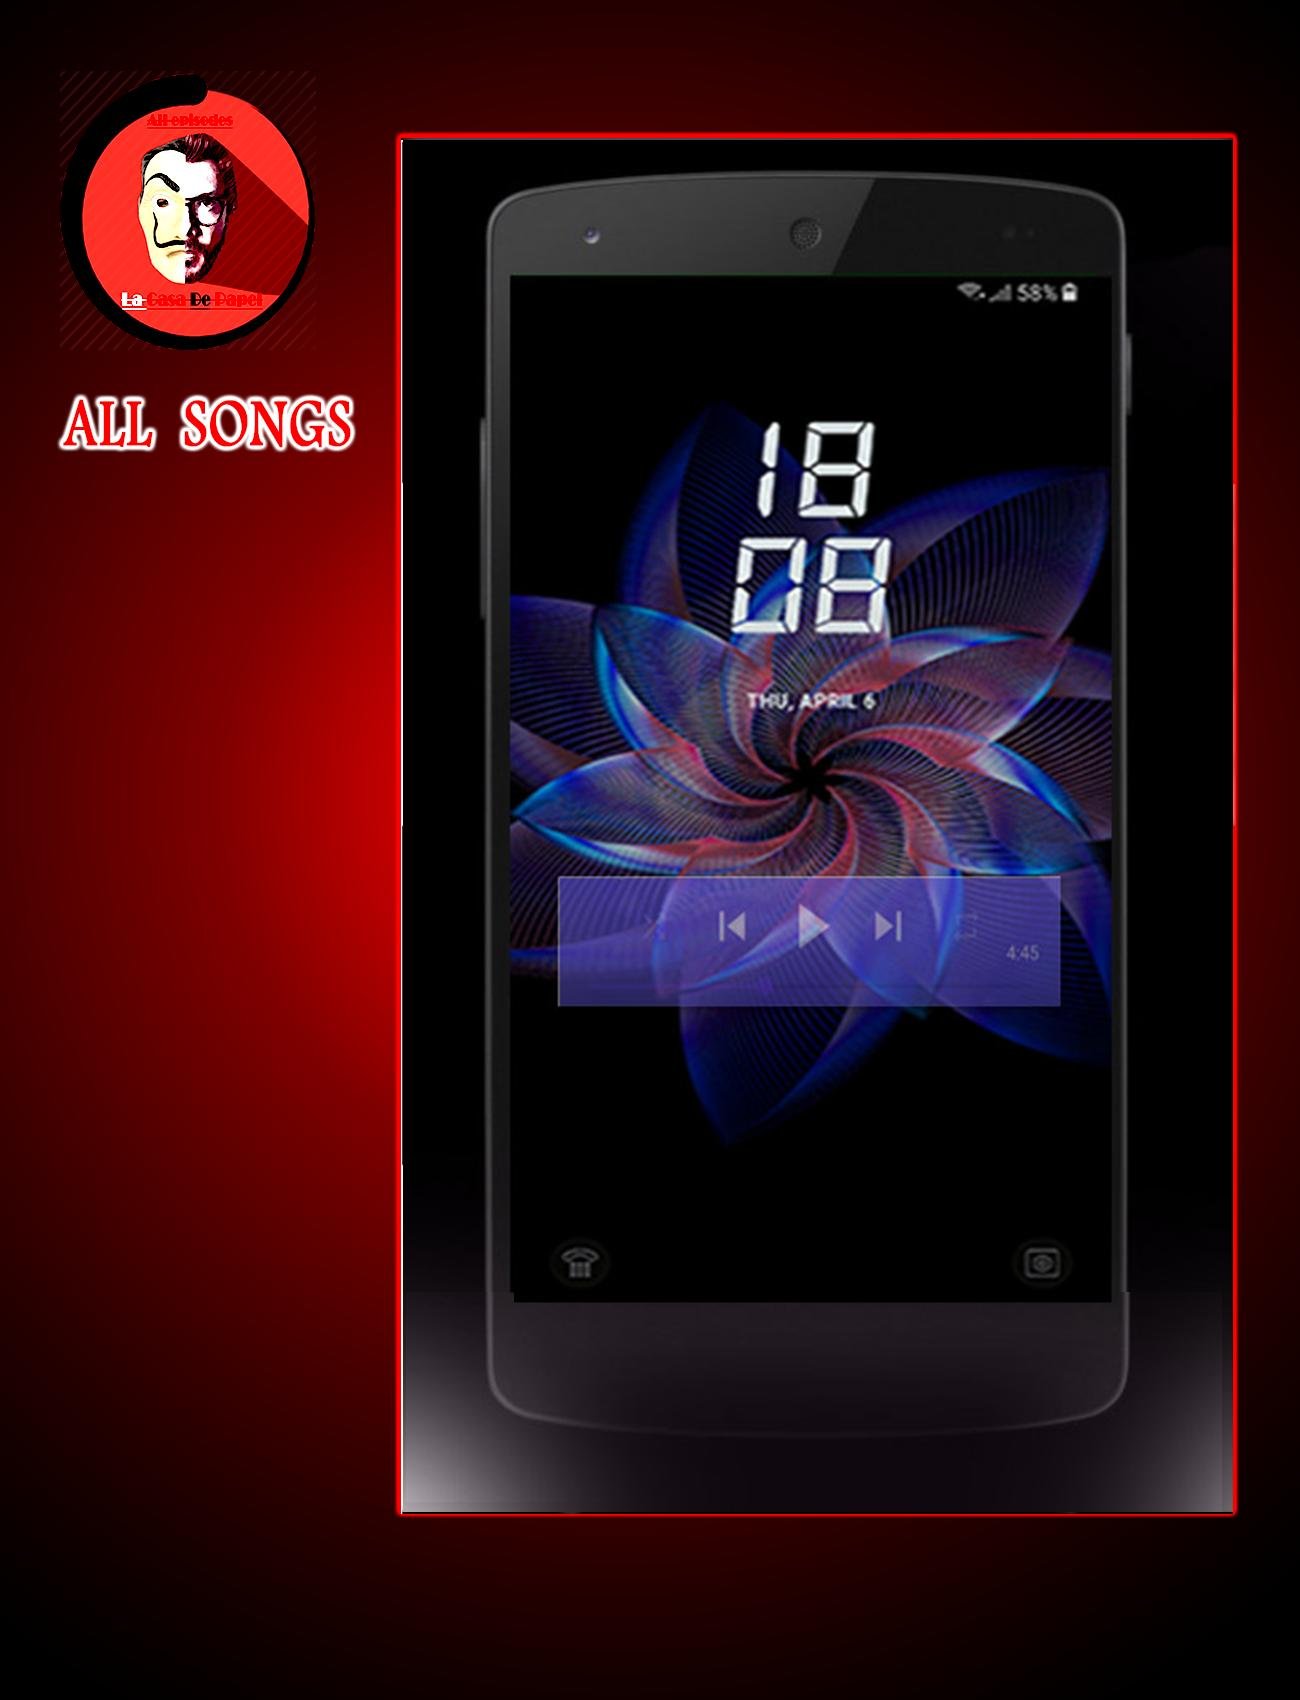 All Songs Casa De Papel Bella Ciao Chansons For Android Apk Download